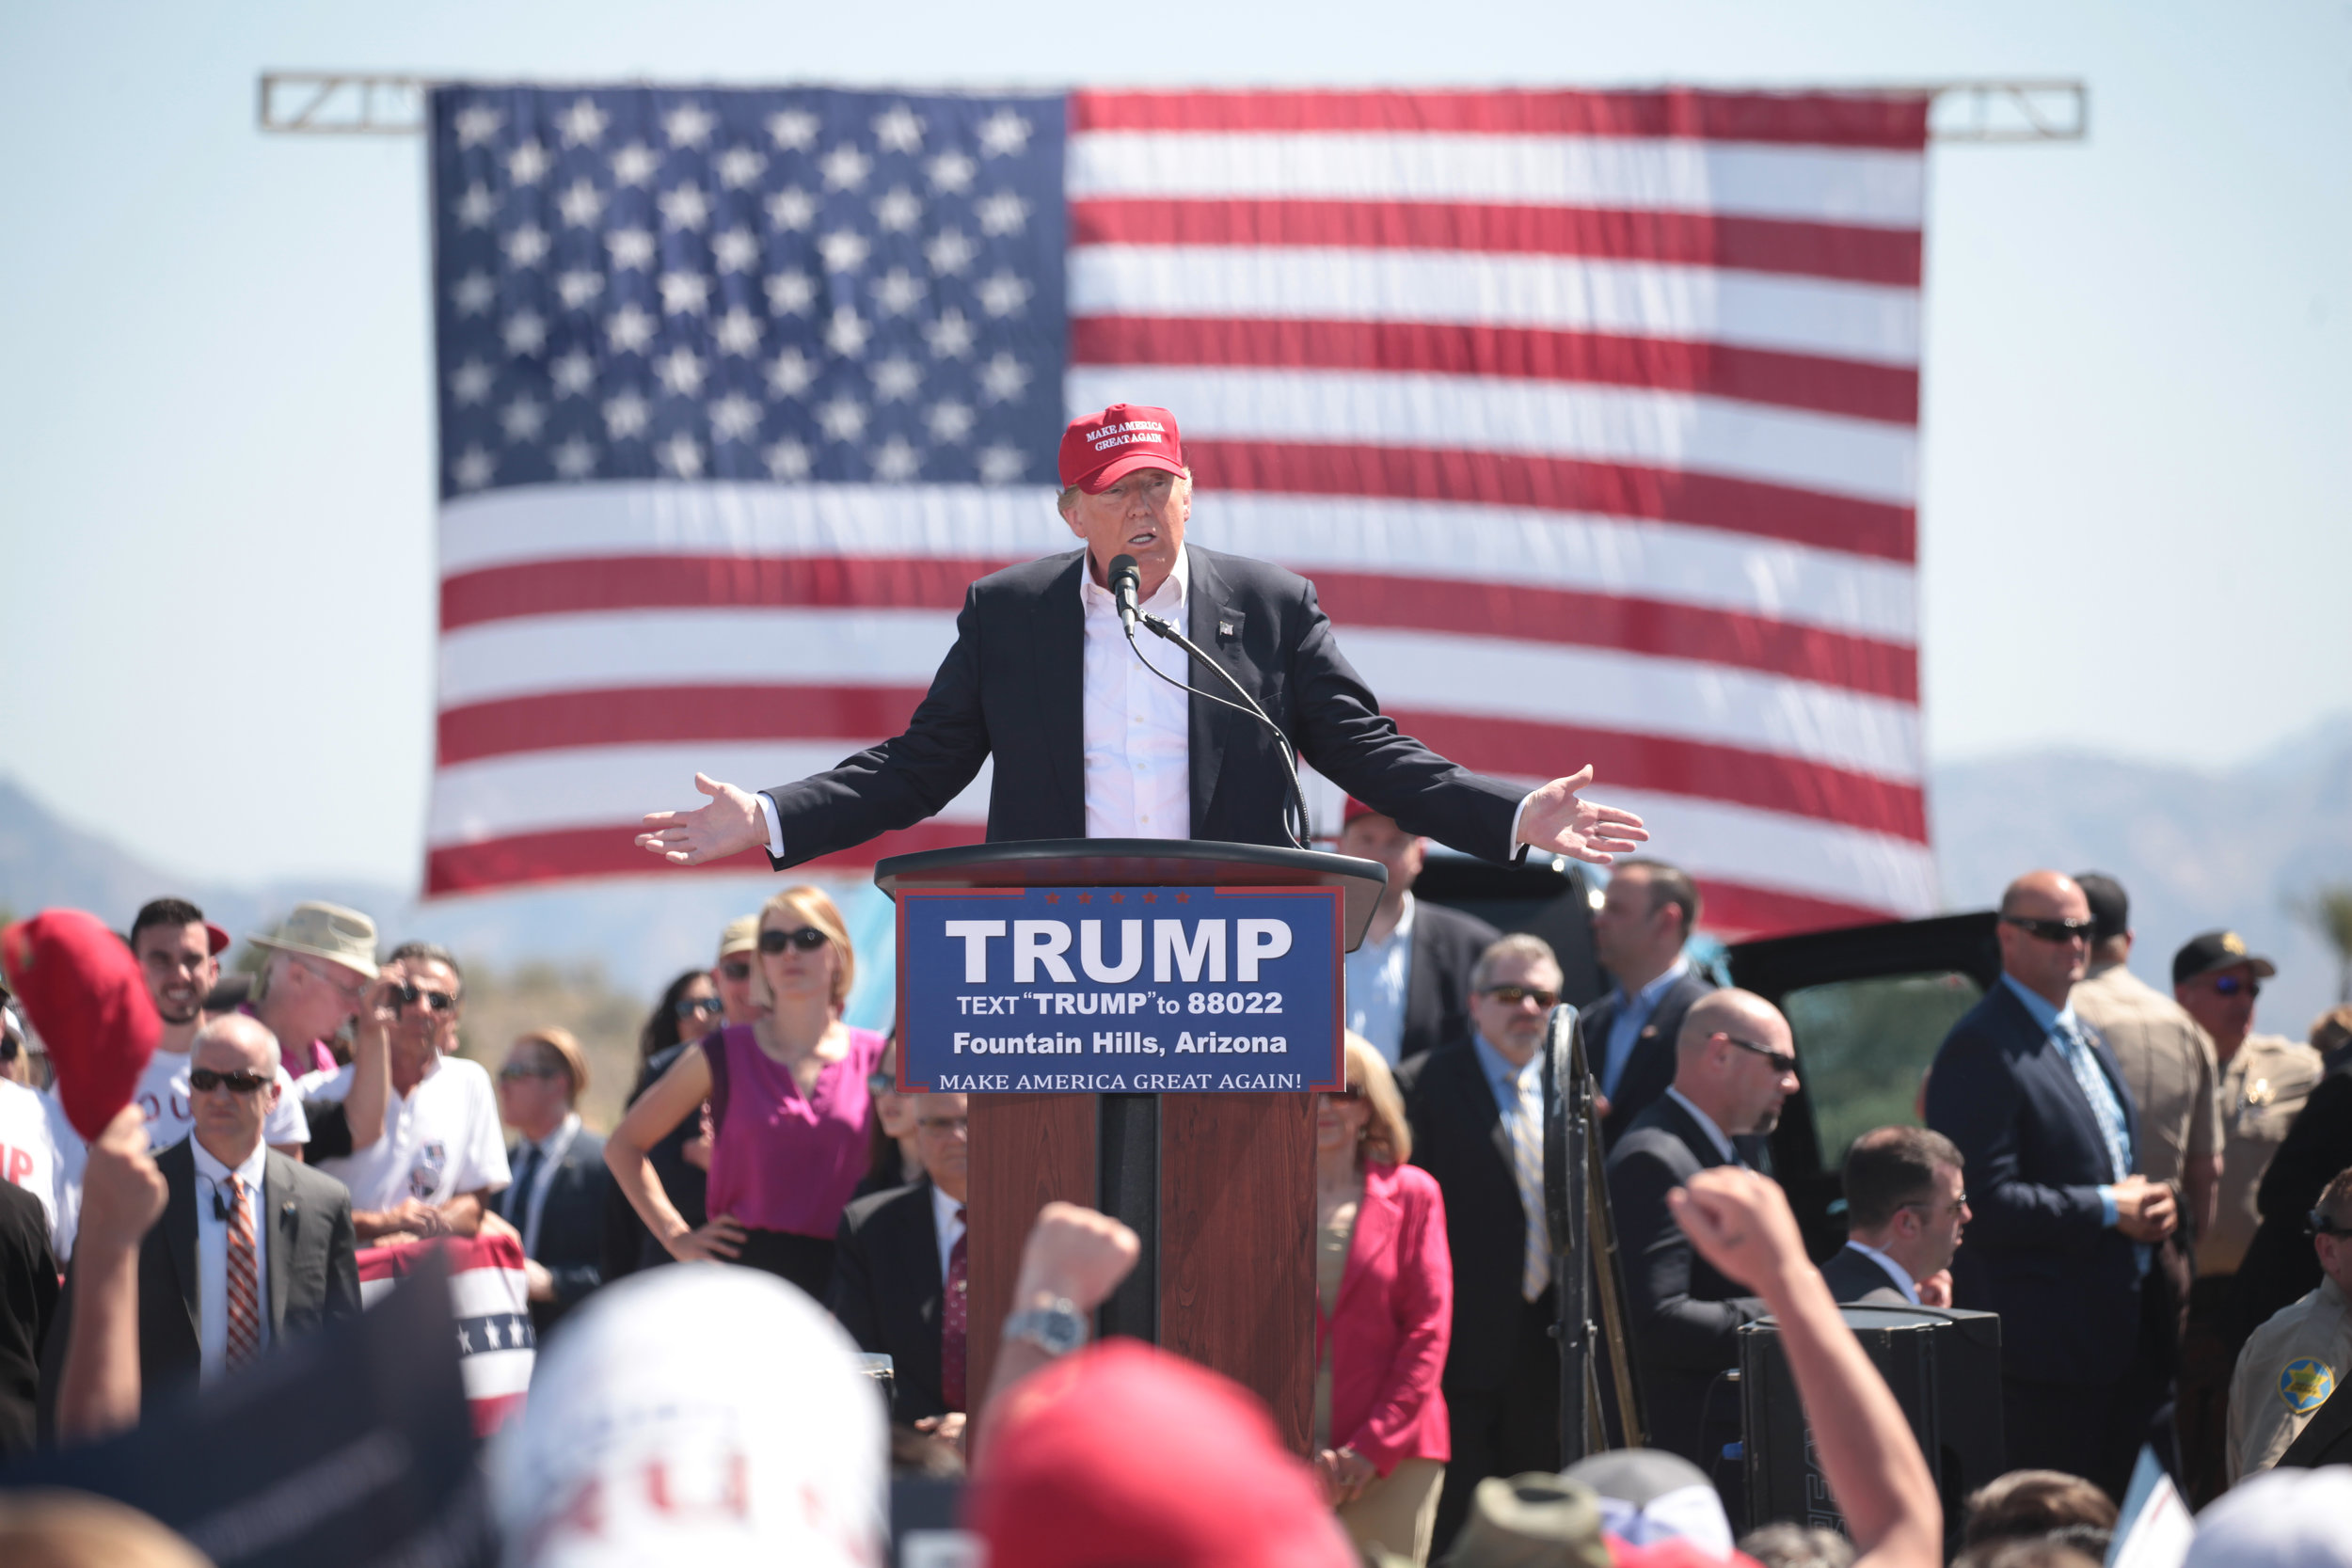 Donald Trump speaks at a campaign event in Fountain Hills, Arizona, before the March 22 primary. Image by Gage Skidmore via Wikimedia Commons.